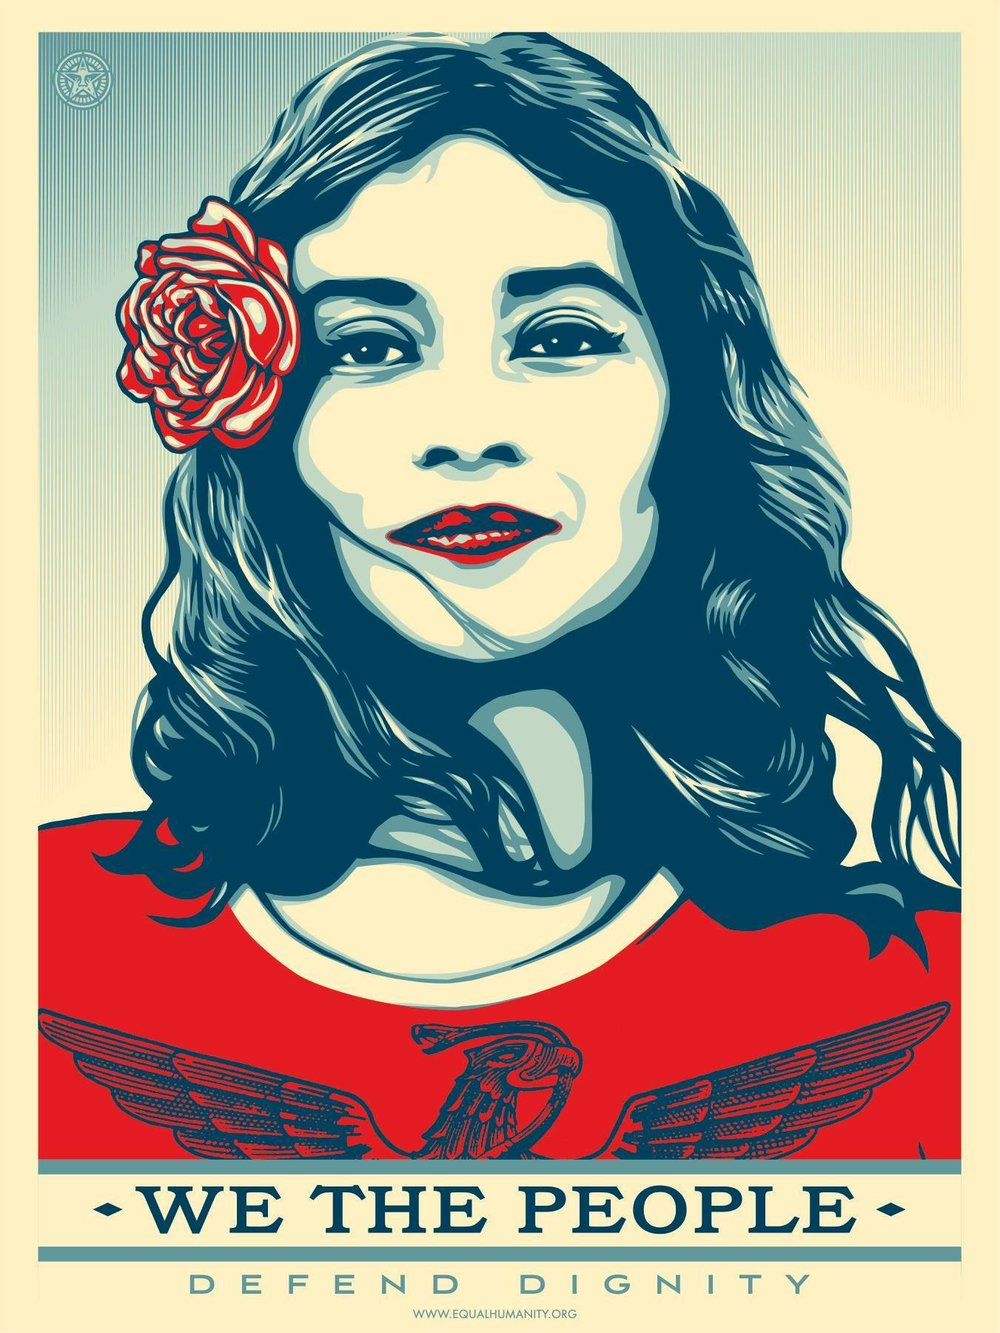 Art by Shepard Fairey